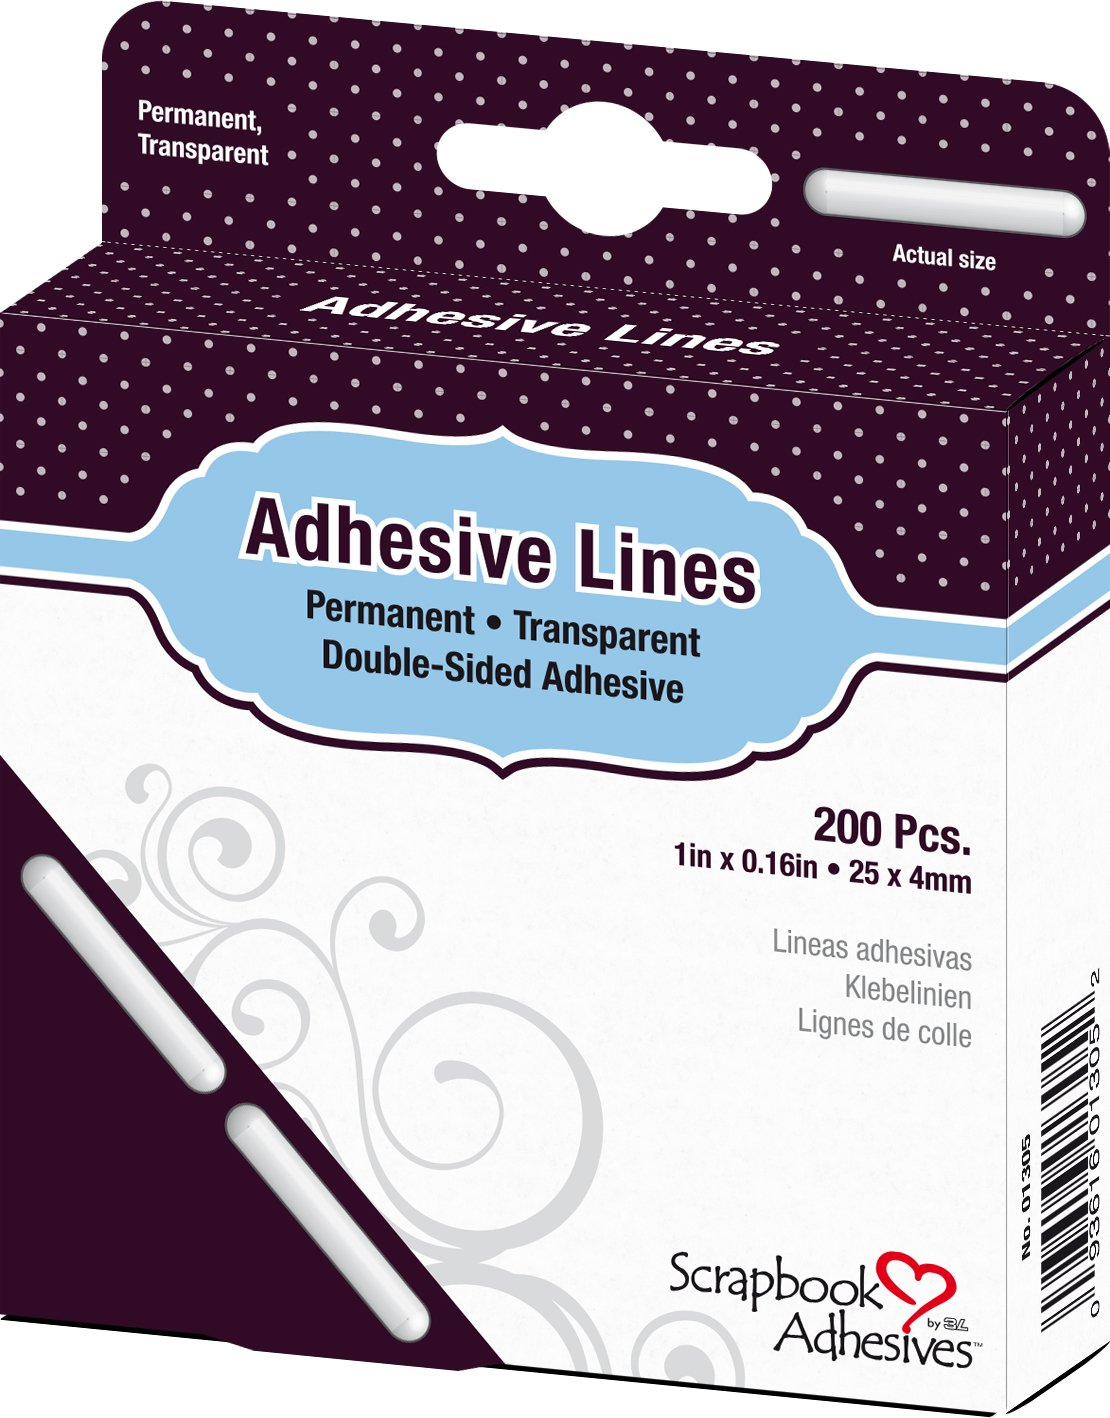 Adhesive Lines